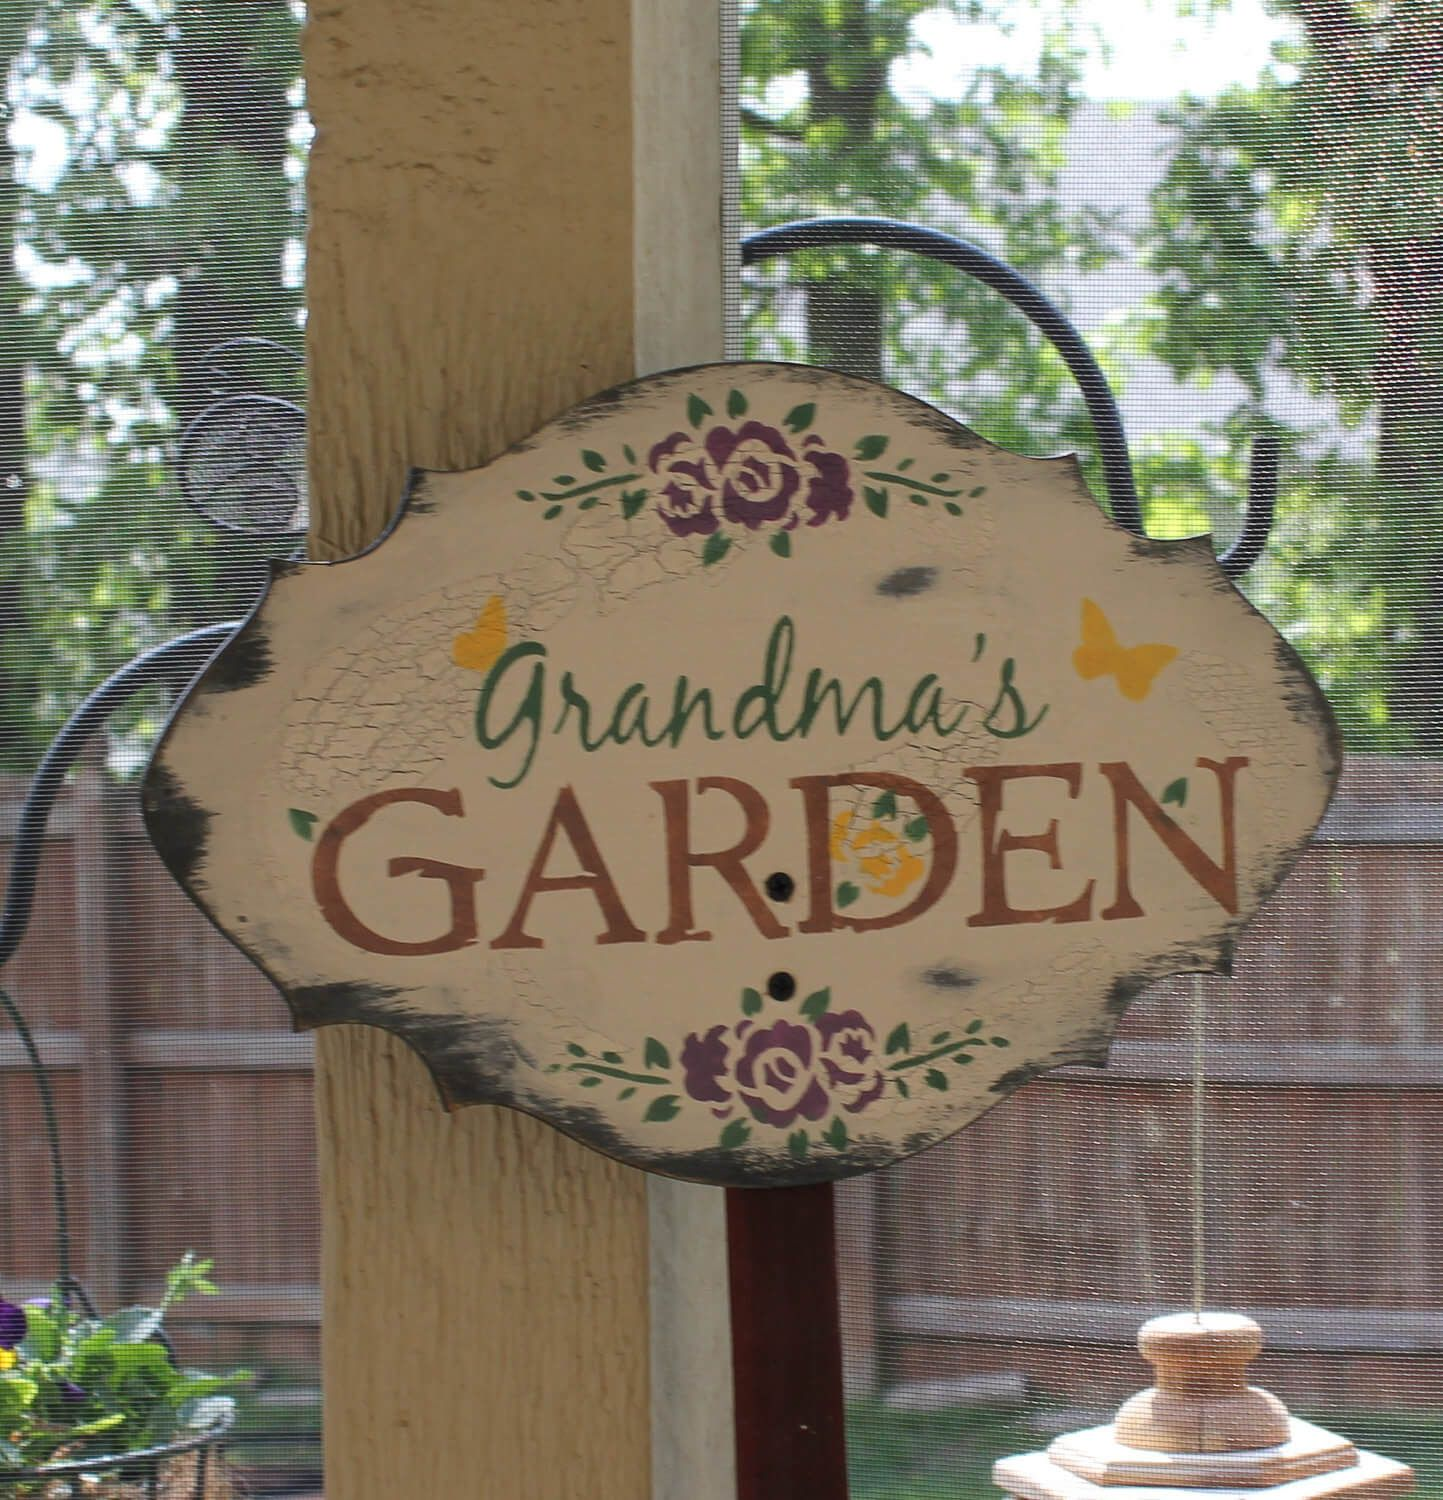 35 Cute Garden Sign Ideas to Make Your Yard More Inviting | Gardens ...